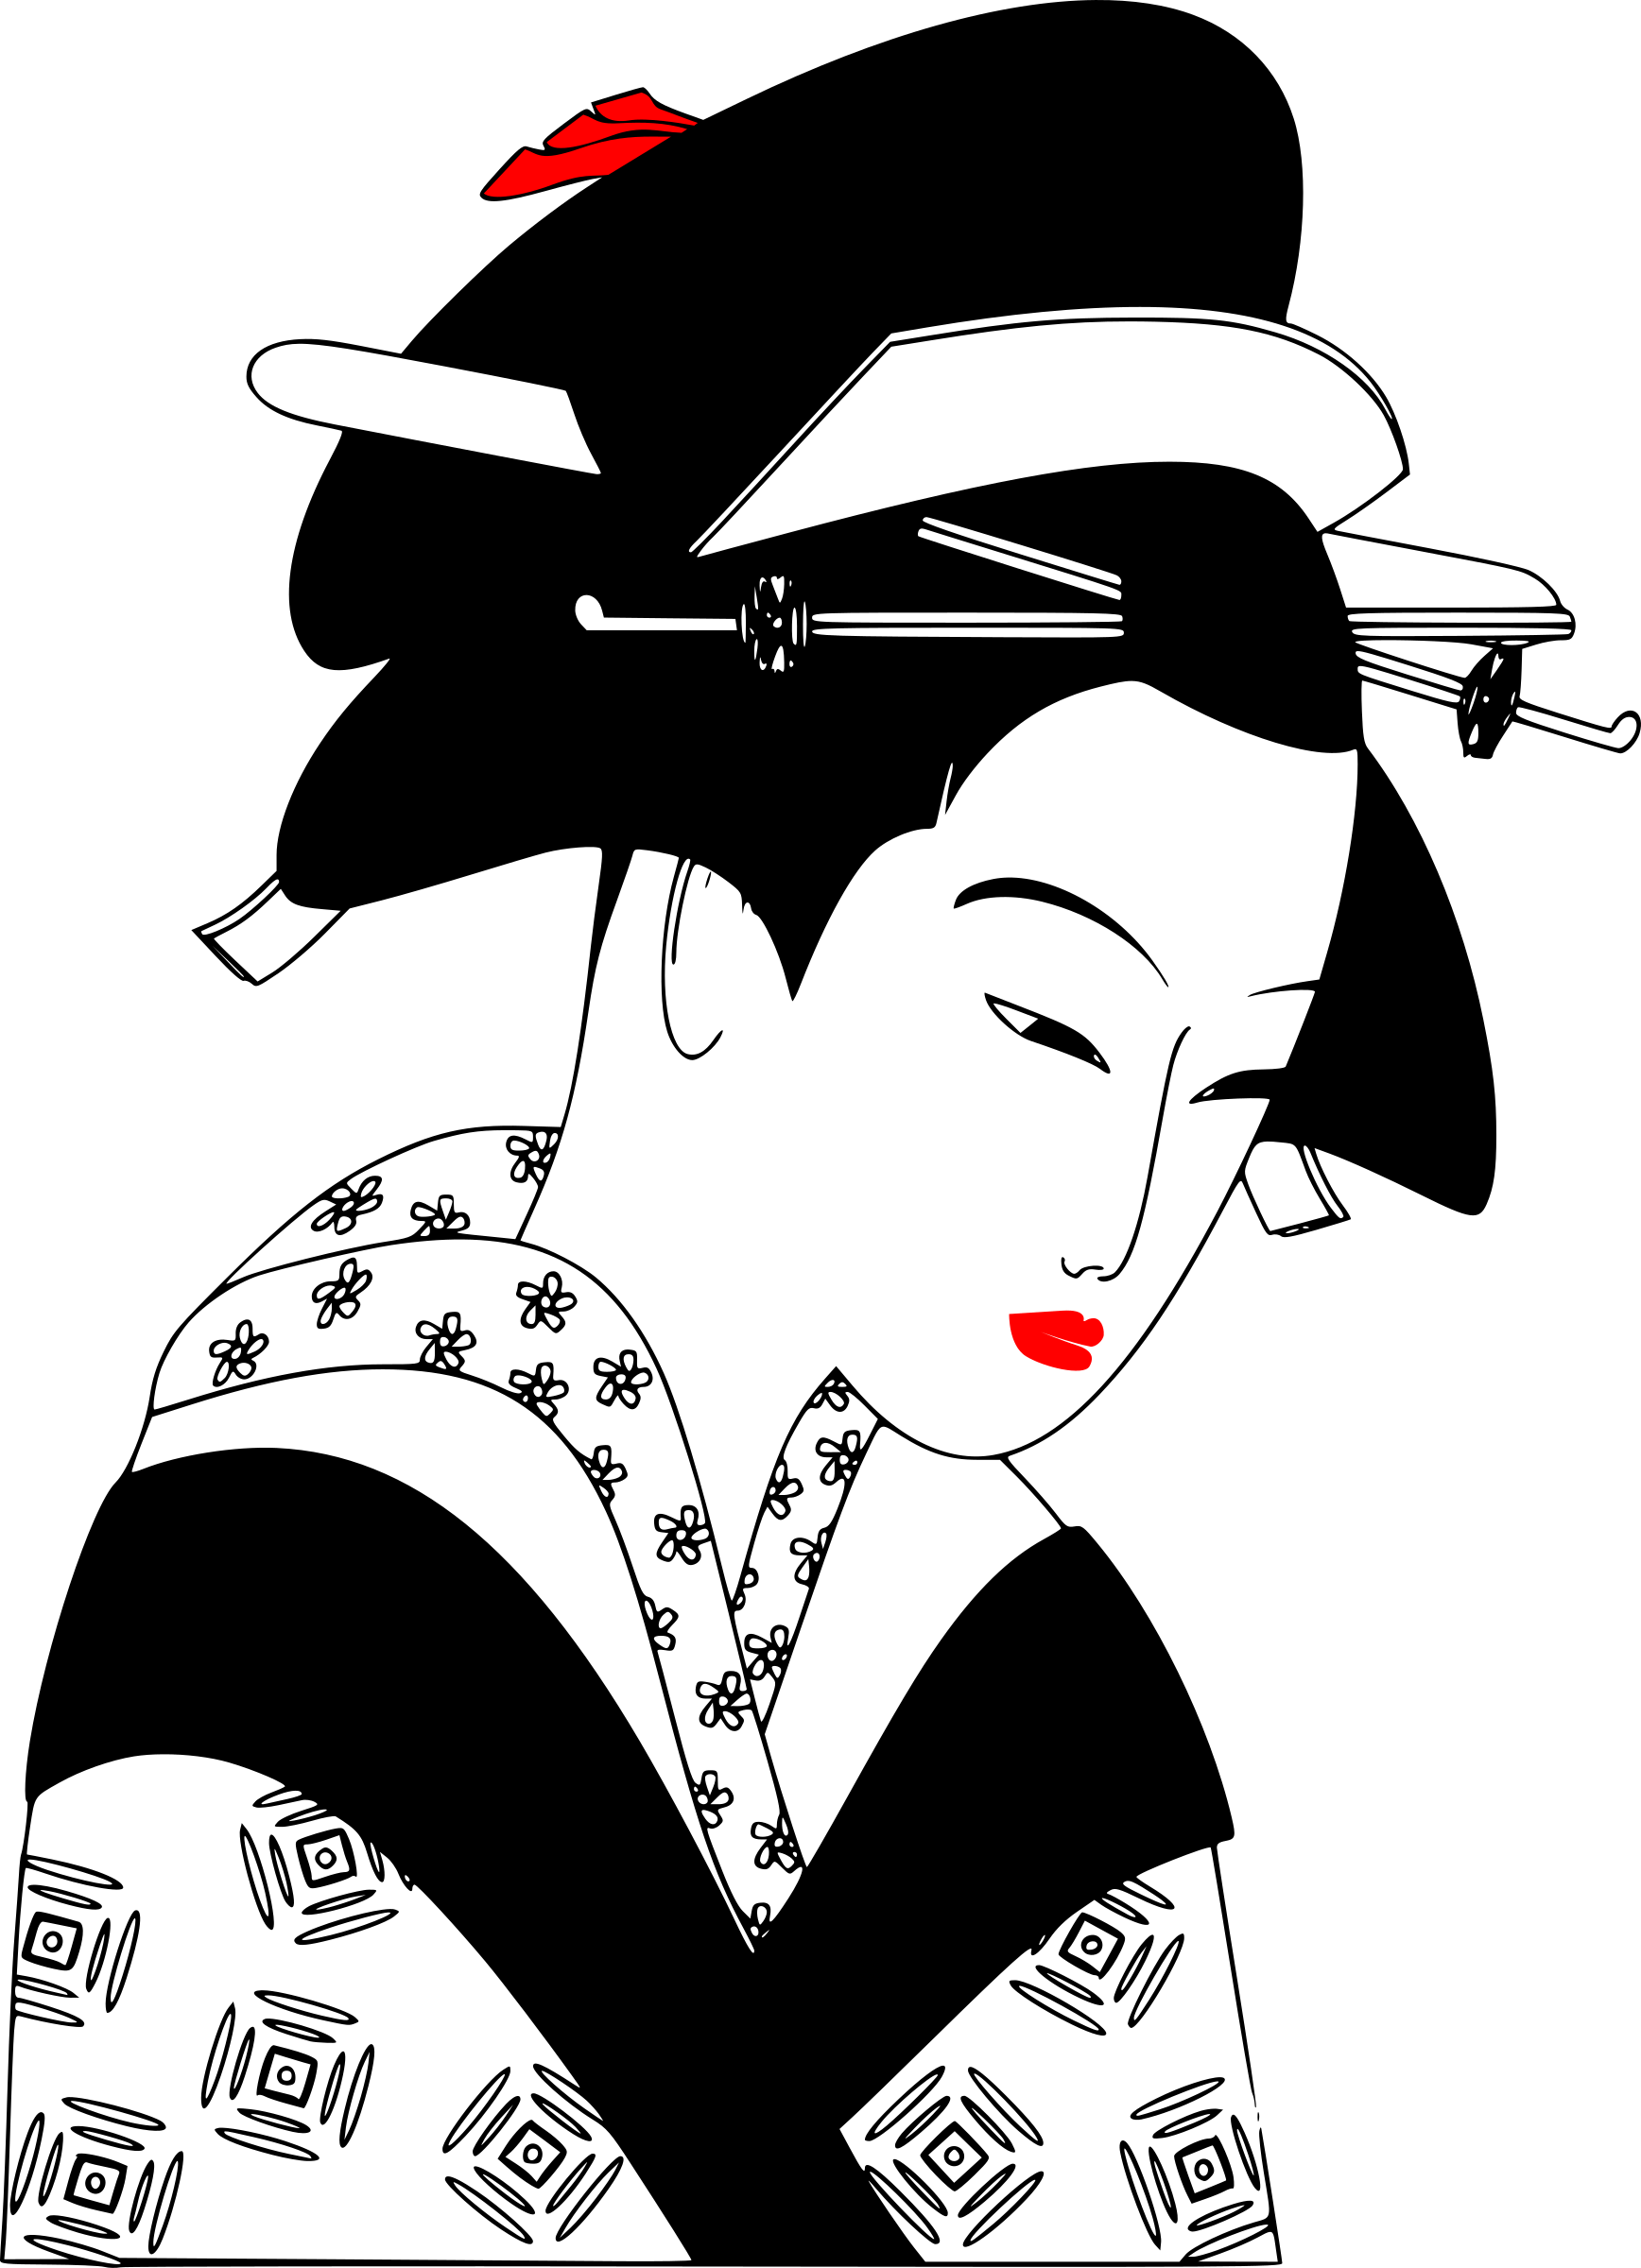 hight resolution of download png image japanese clipart 1575